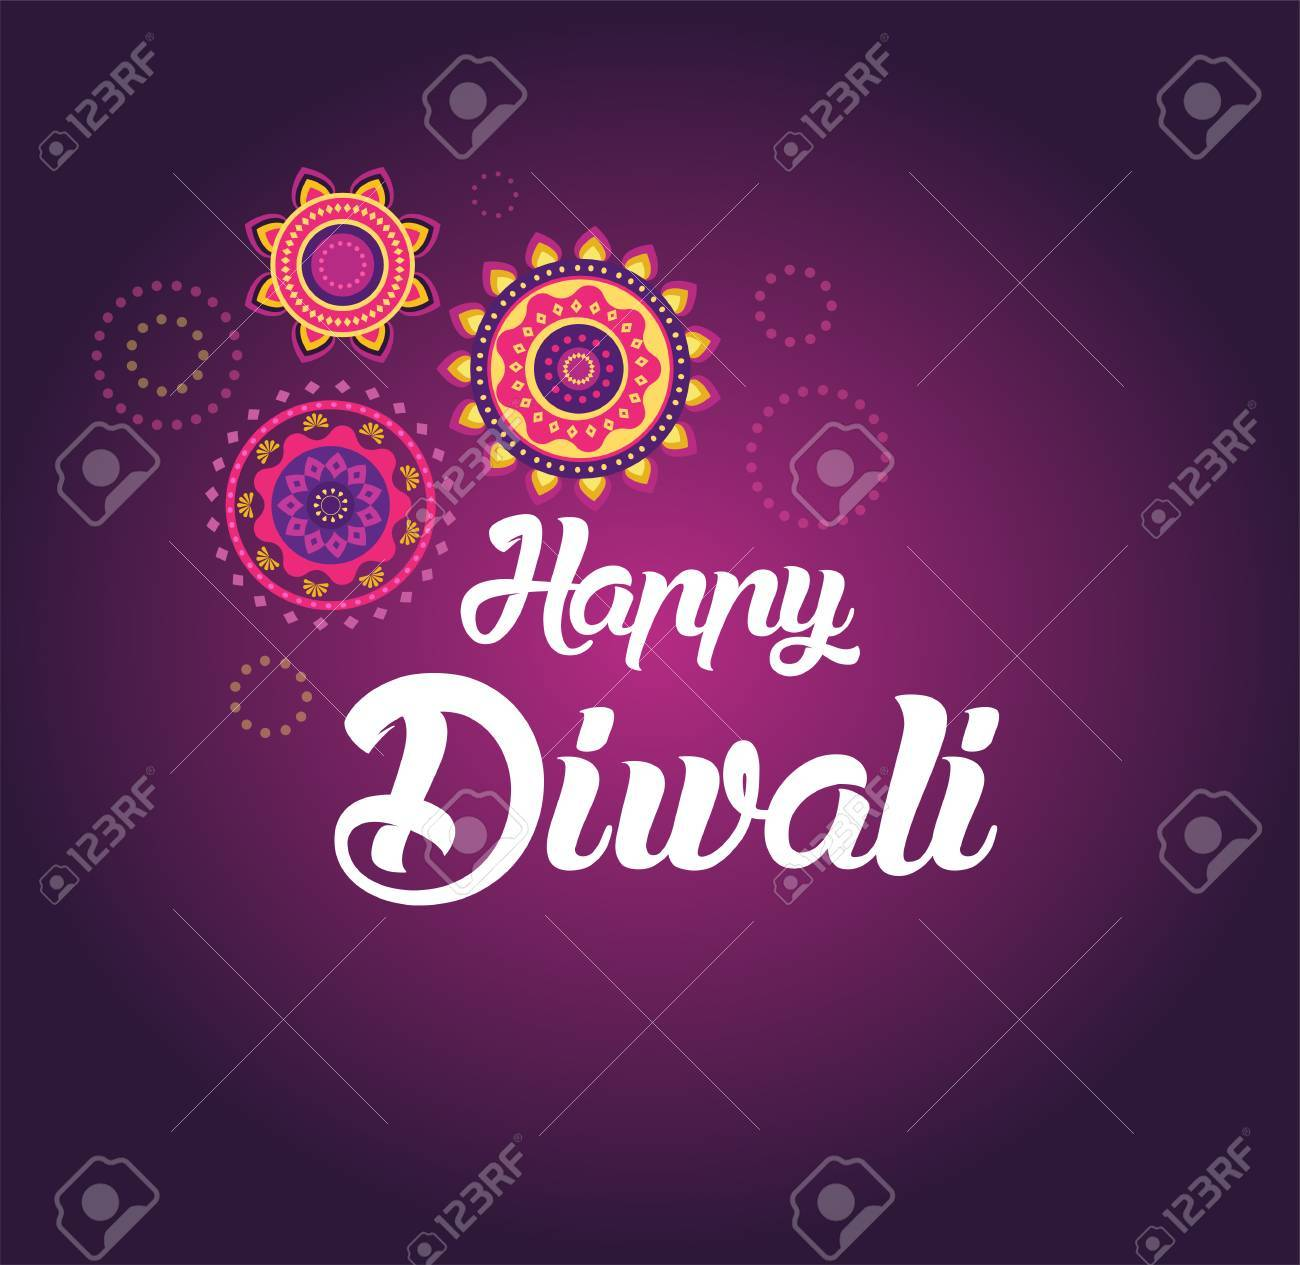 Happy Diwali Greeting Card For Hindu Community Indian Festival